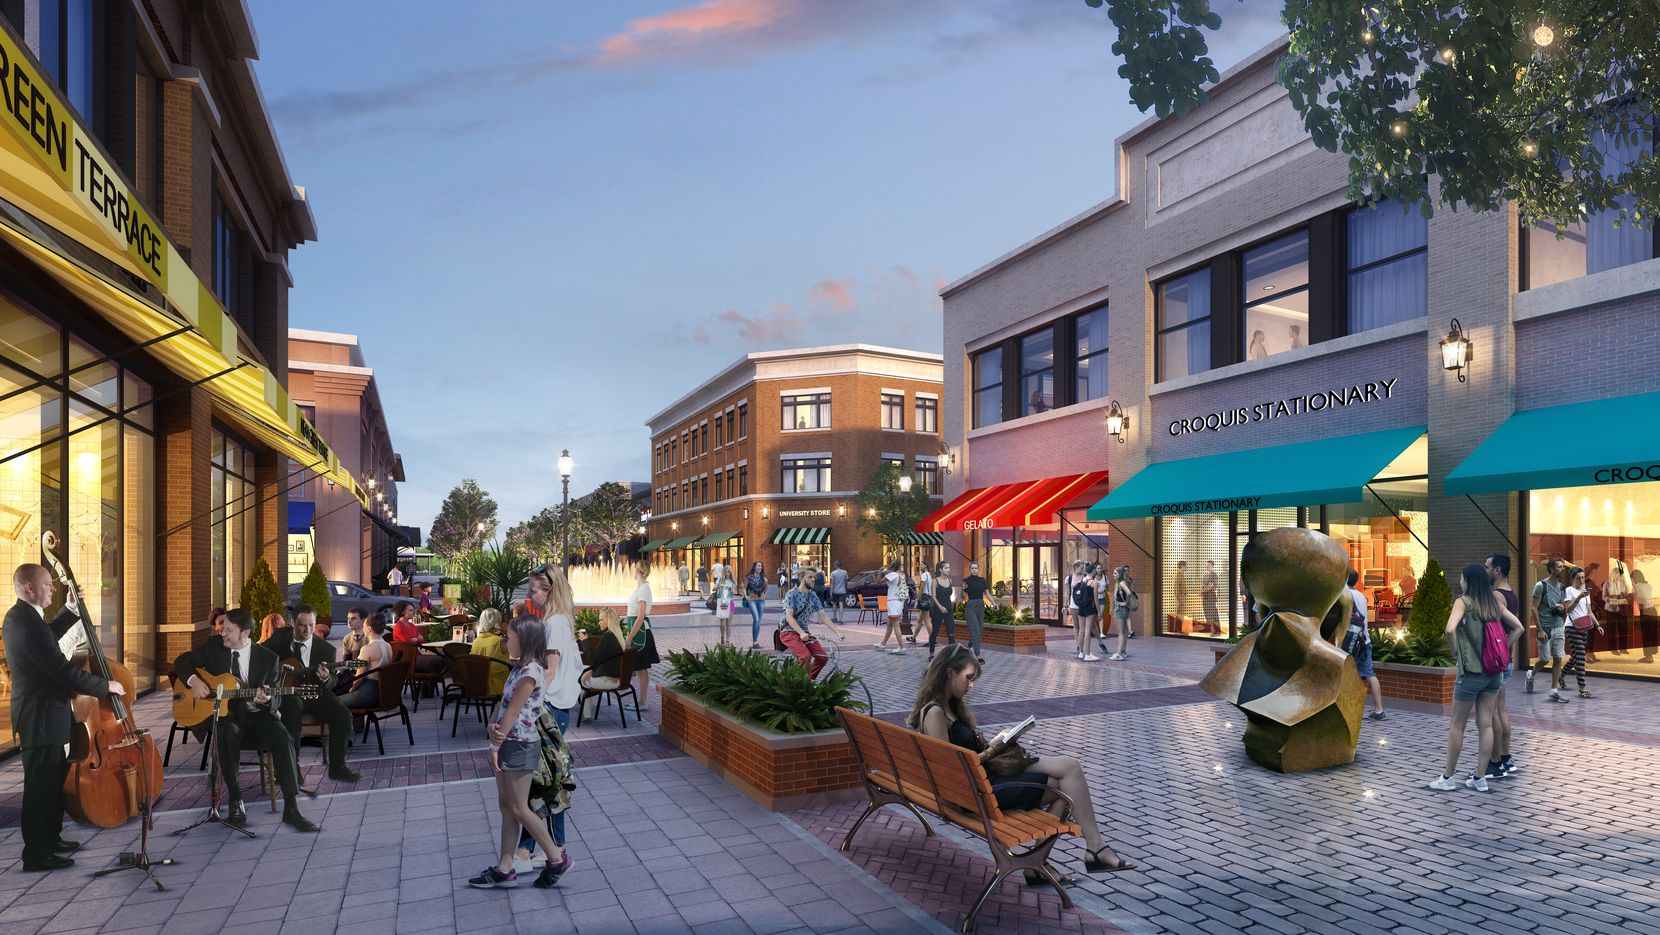 One of the retail streets planned in the Fields community.